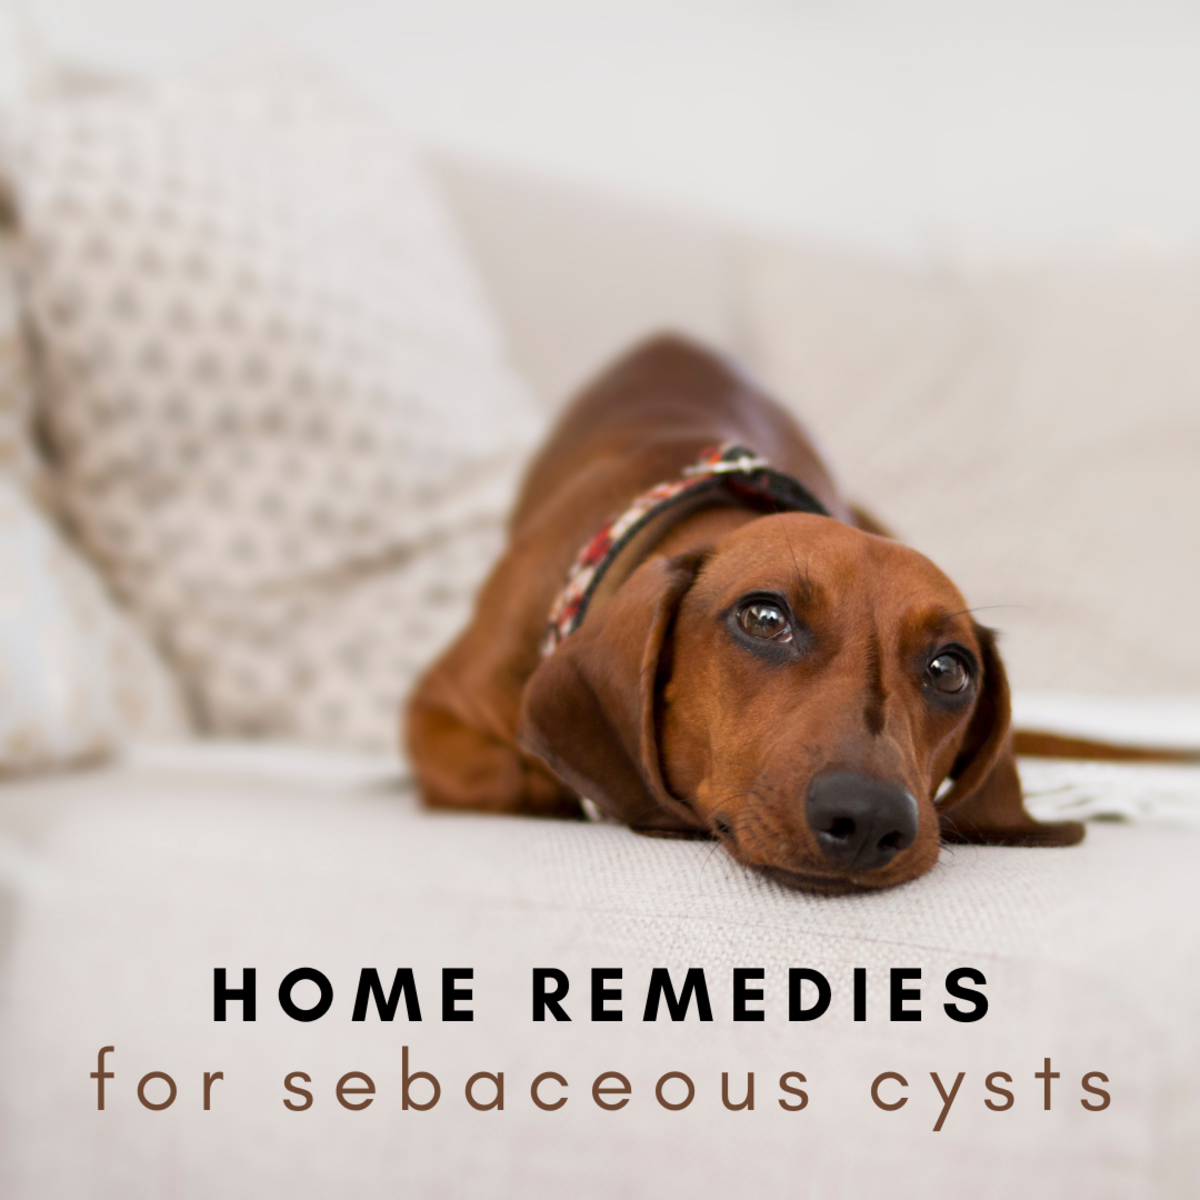 There are several easy and budget-friendly ways to remedy your dog's benign cyst at home.